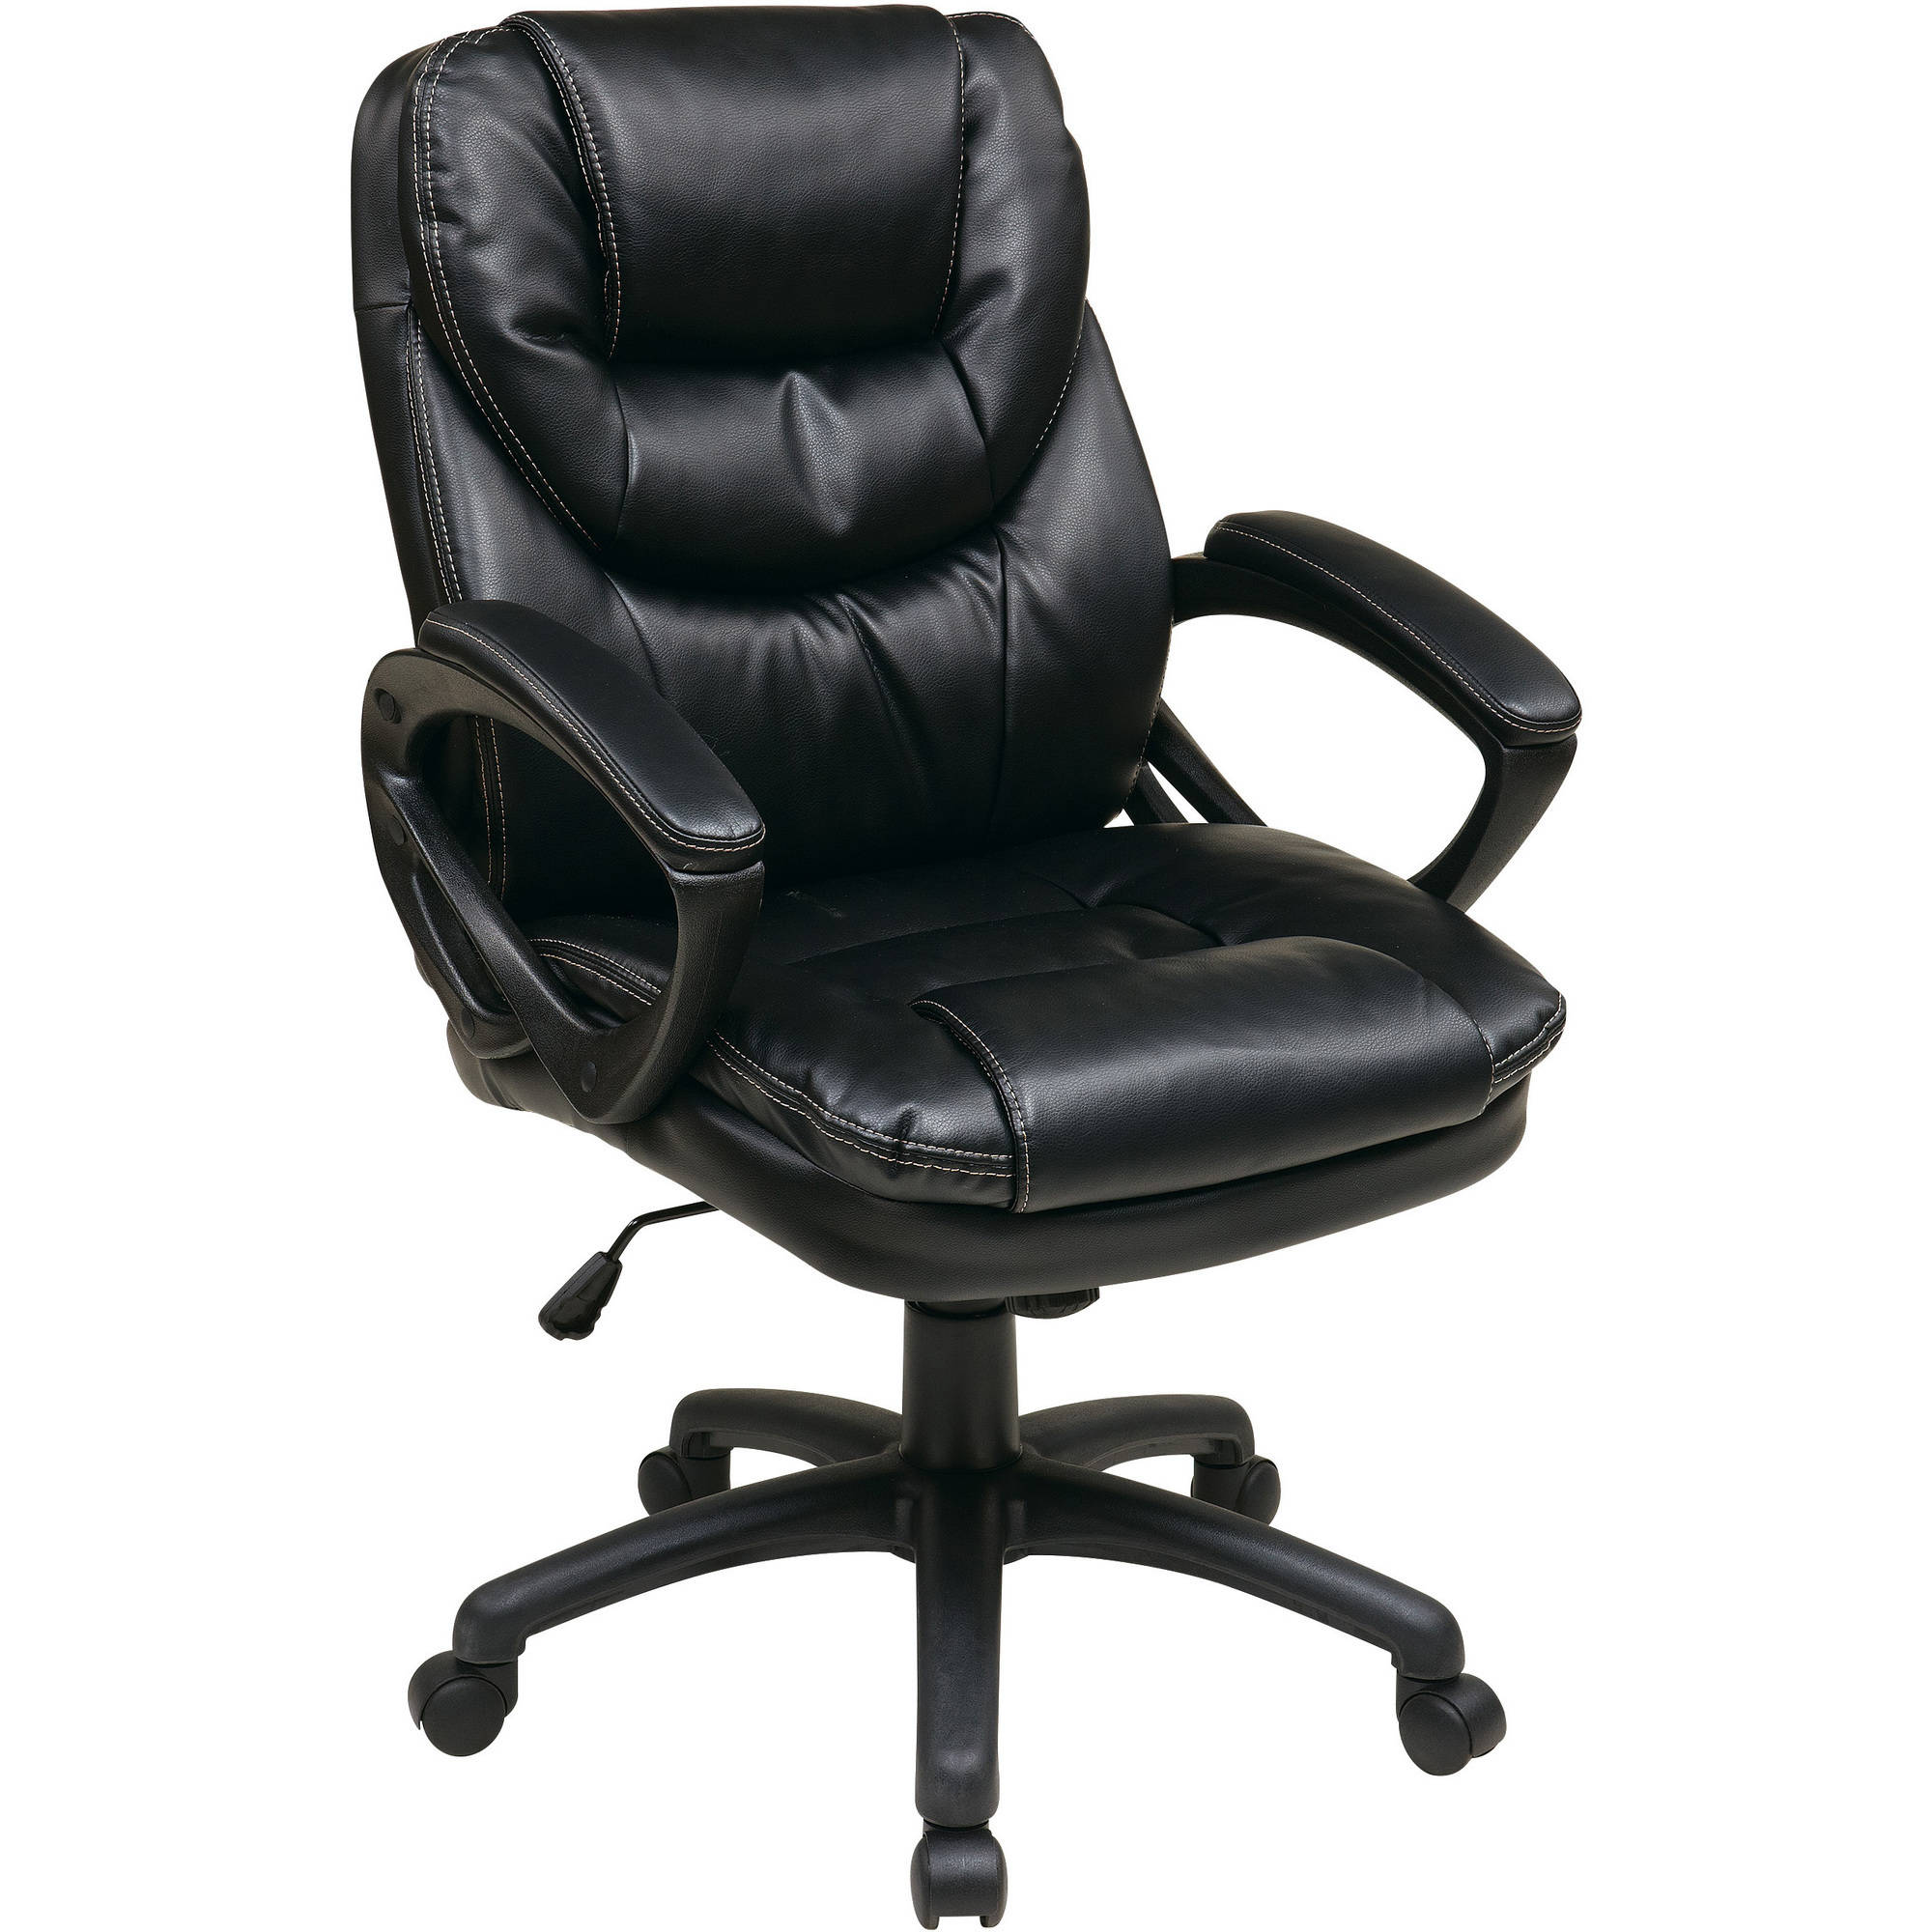 Modular leather office chair office star faux-leather manageru0027s office chair with padded arms hwdozwx